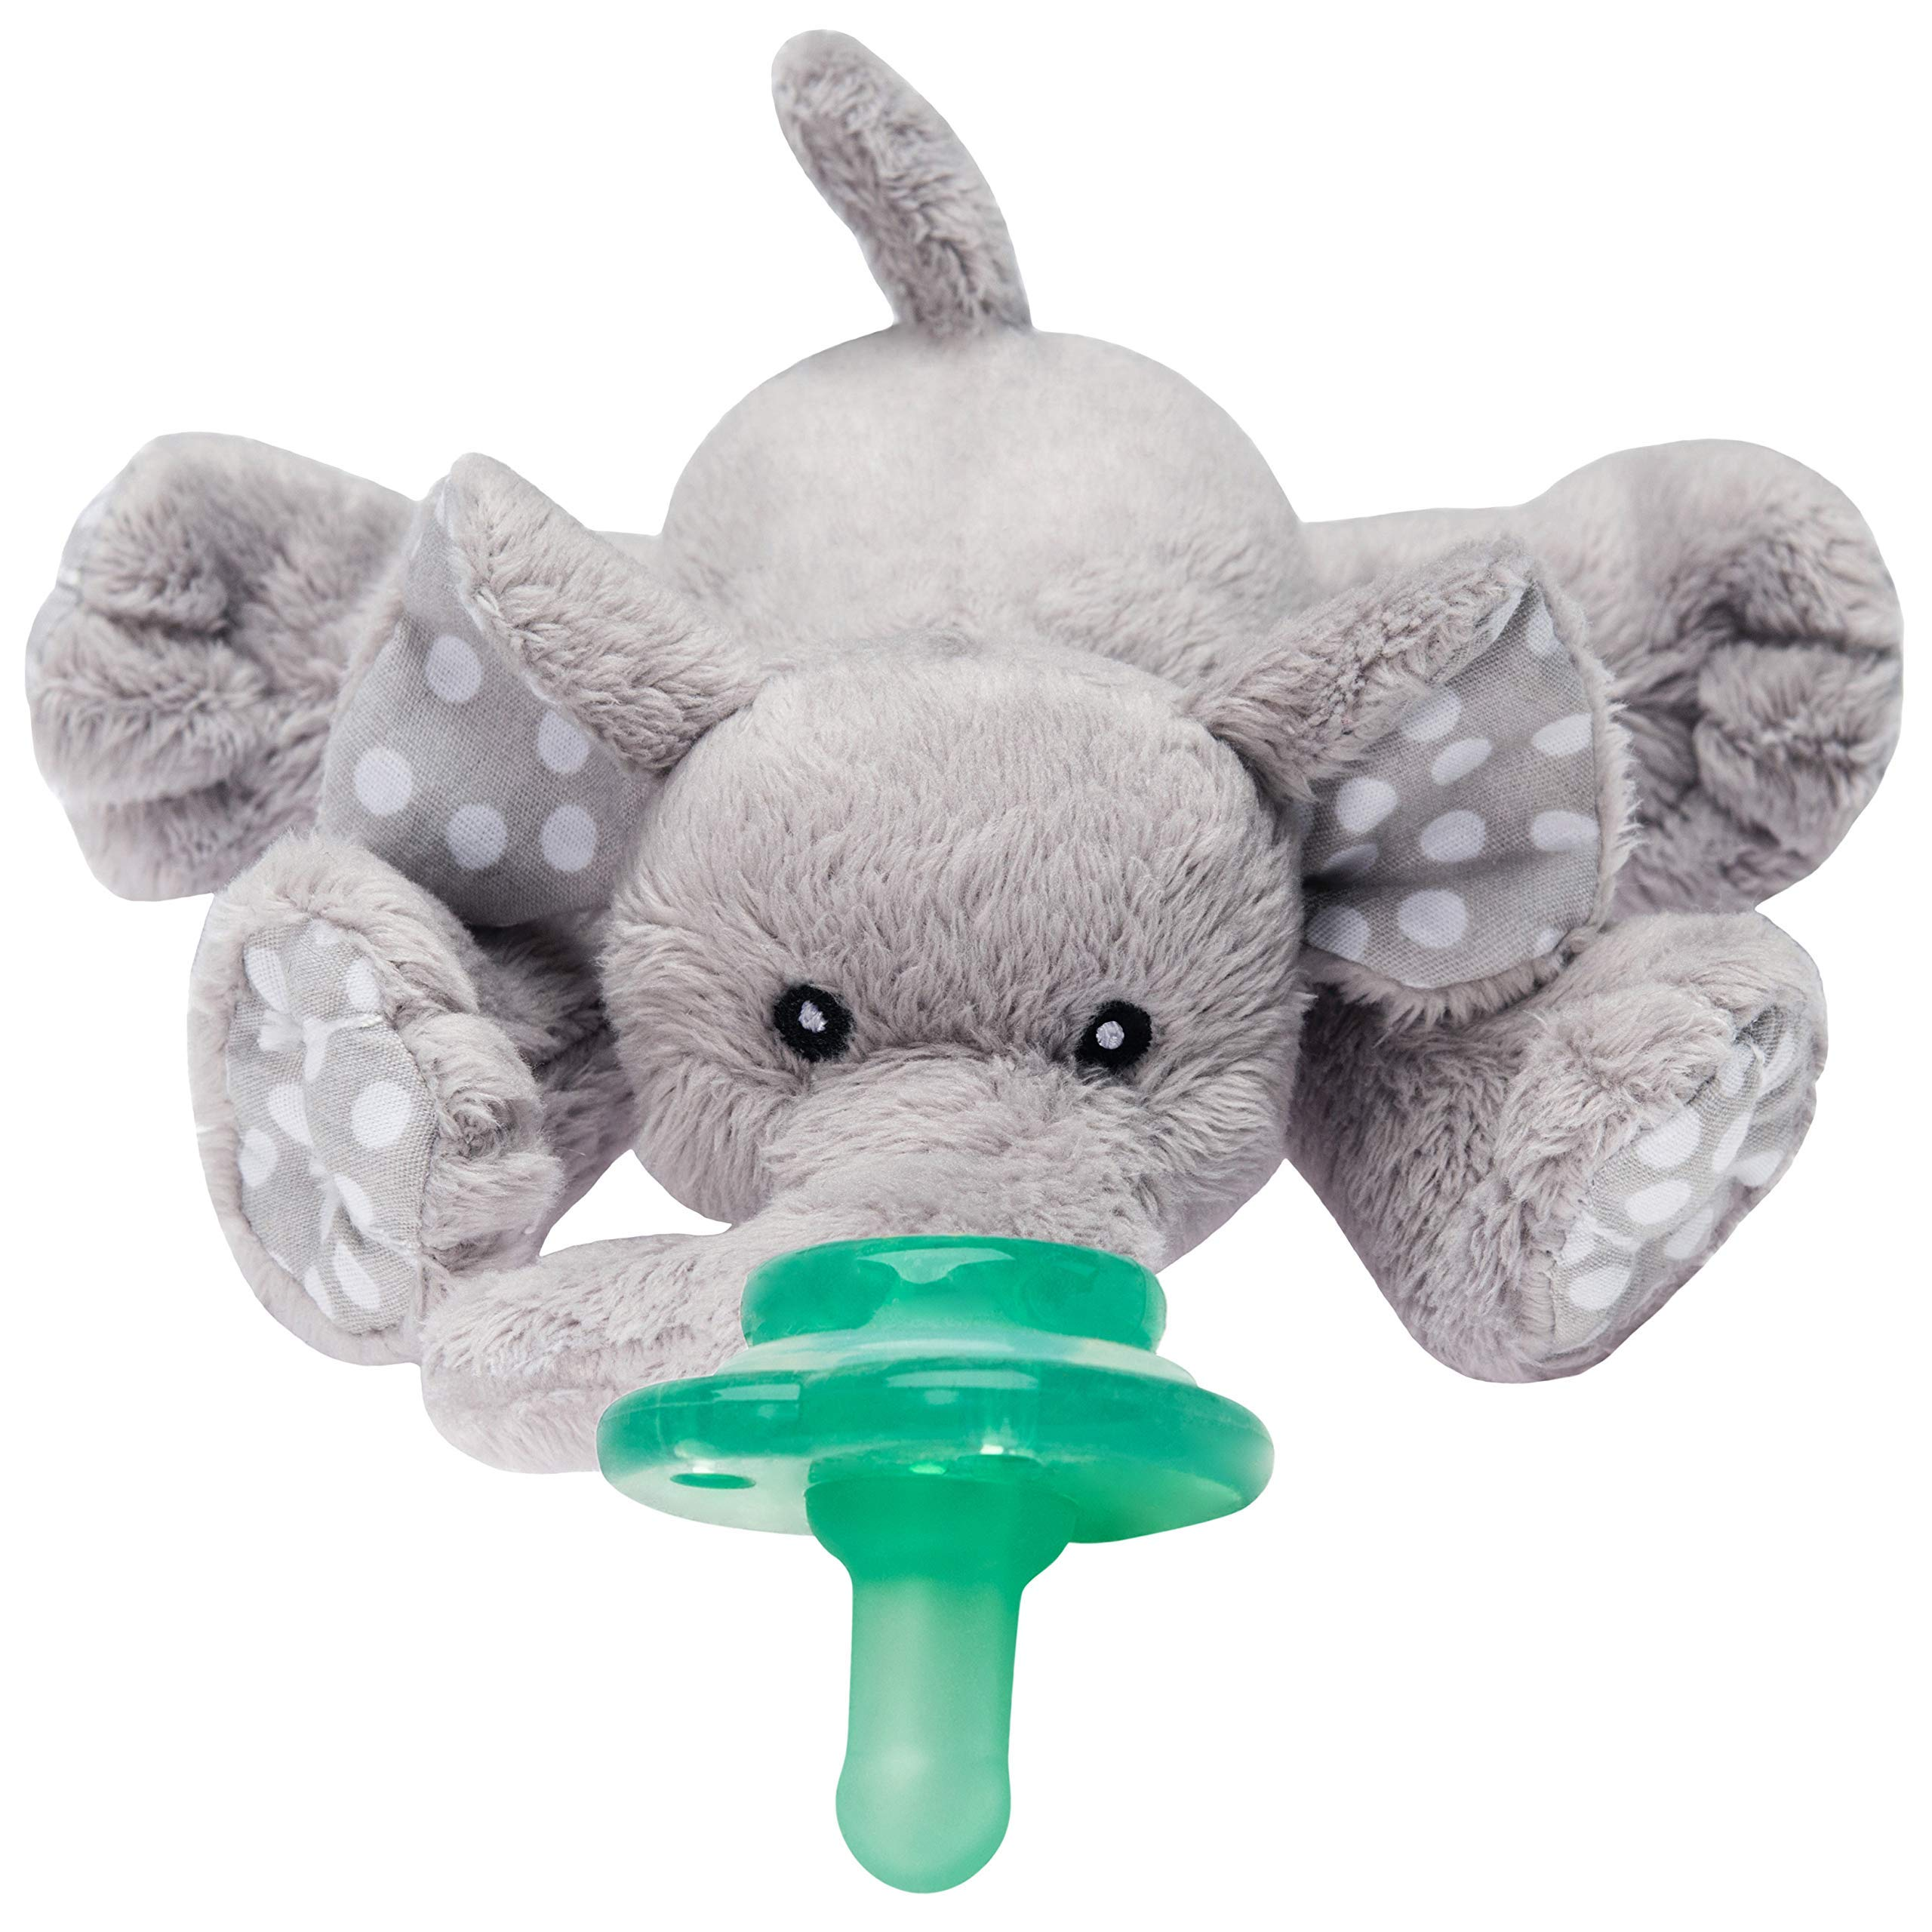 Amazon.com : Philips Avent Soothie Pacifier, 0-3 Months ...